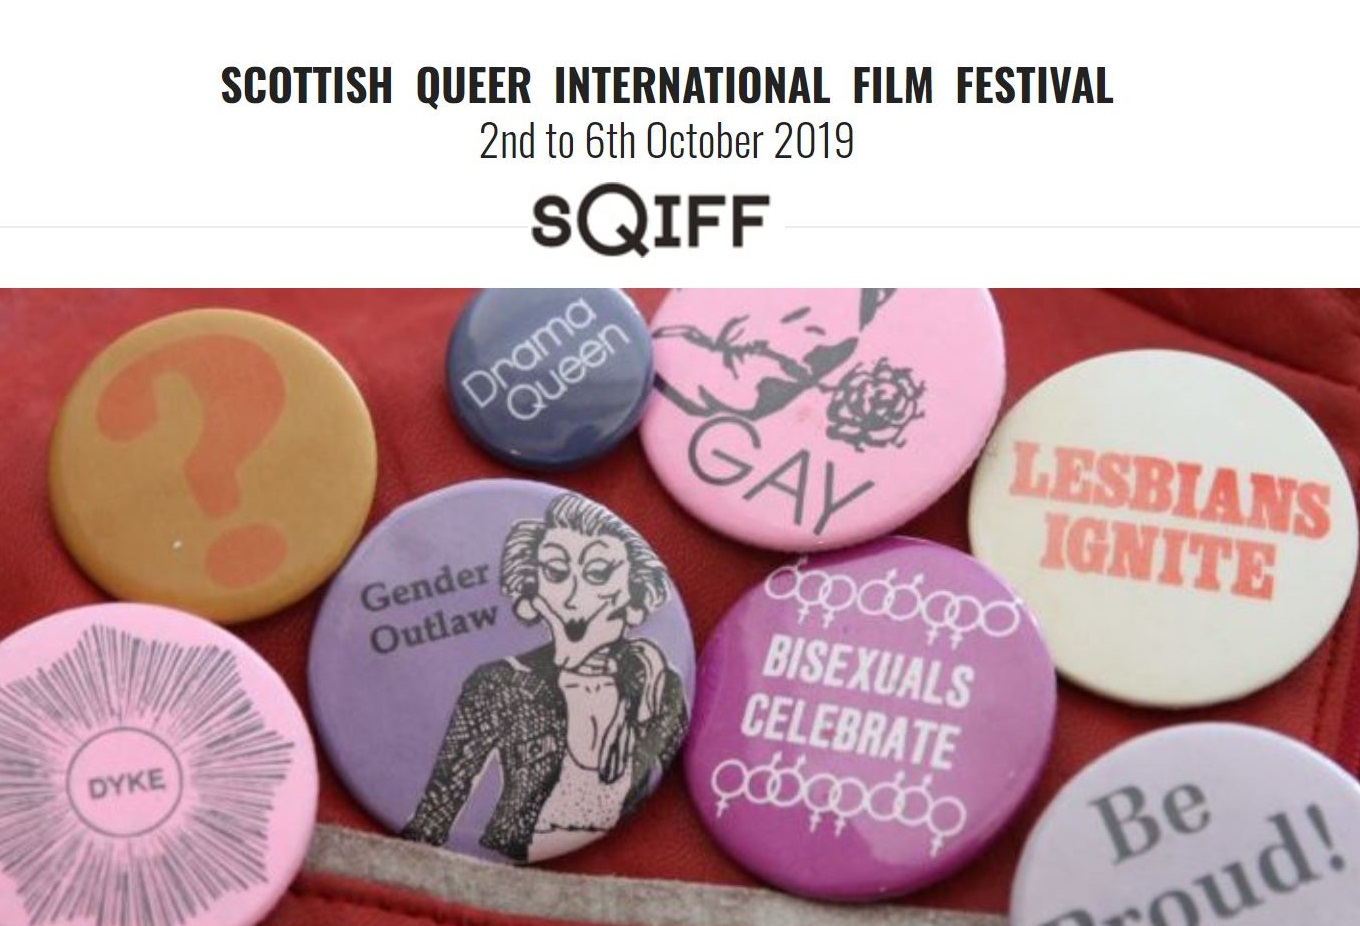 SQIFF - Scottish Queer Film Festival and Accessibility Event